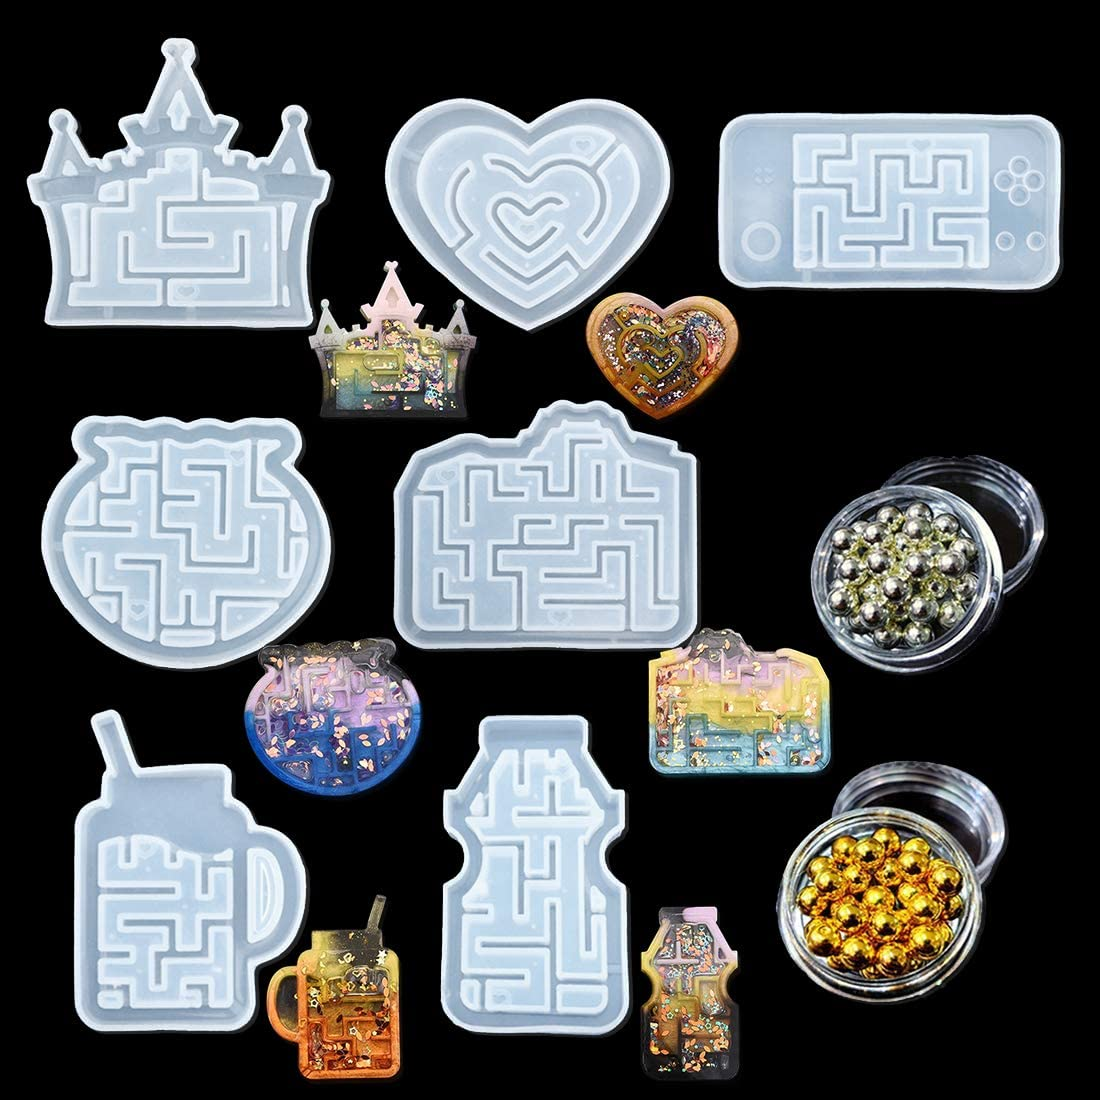 FineInno Resin Tucson Mall Shaker Molds Silicone Qu sold out Sets Casting Epoxy